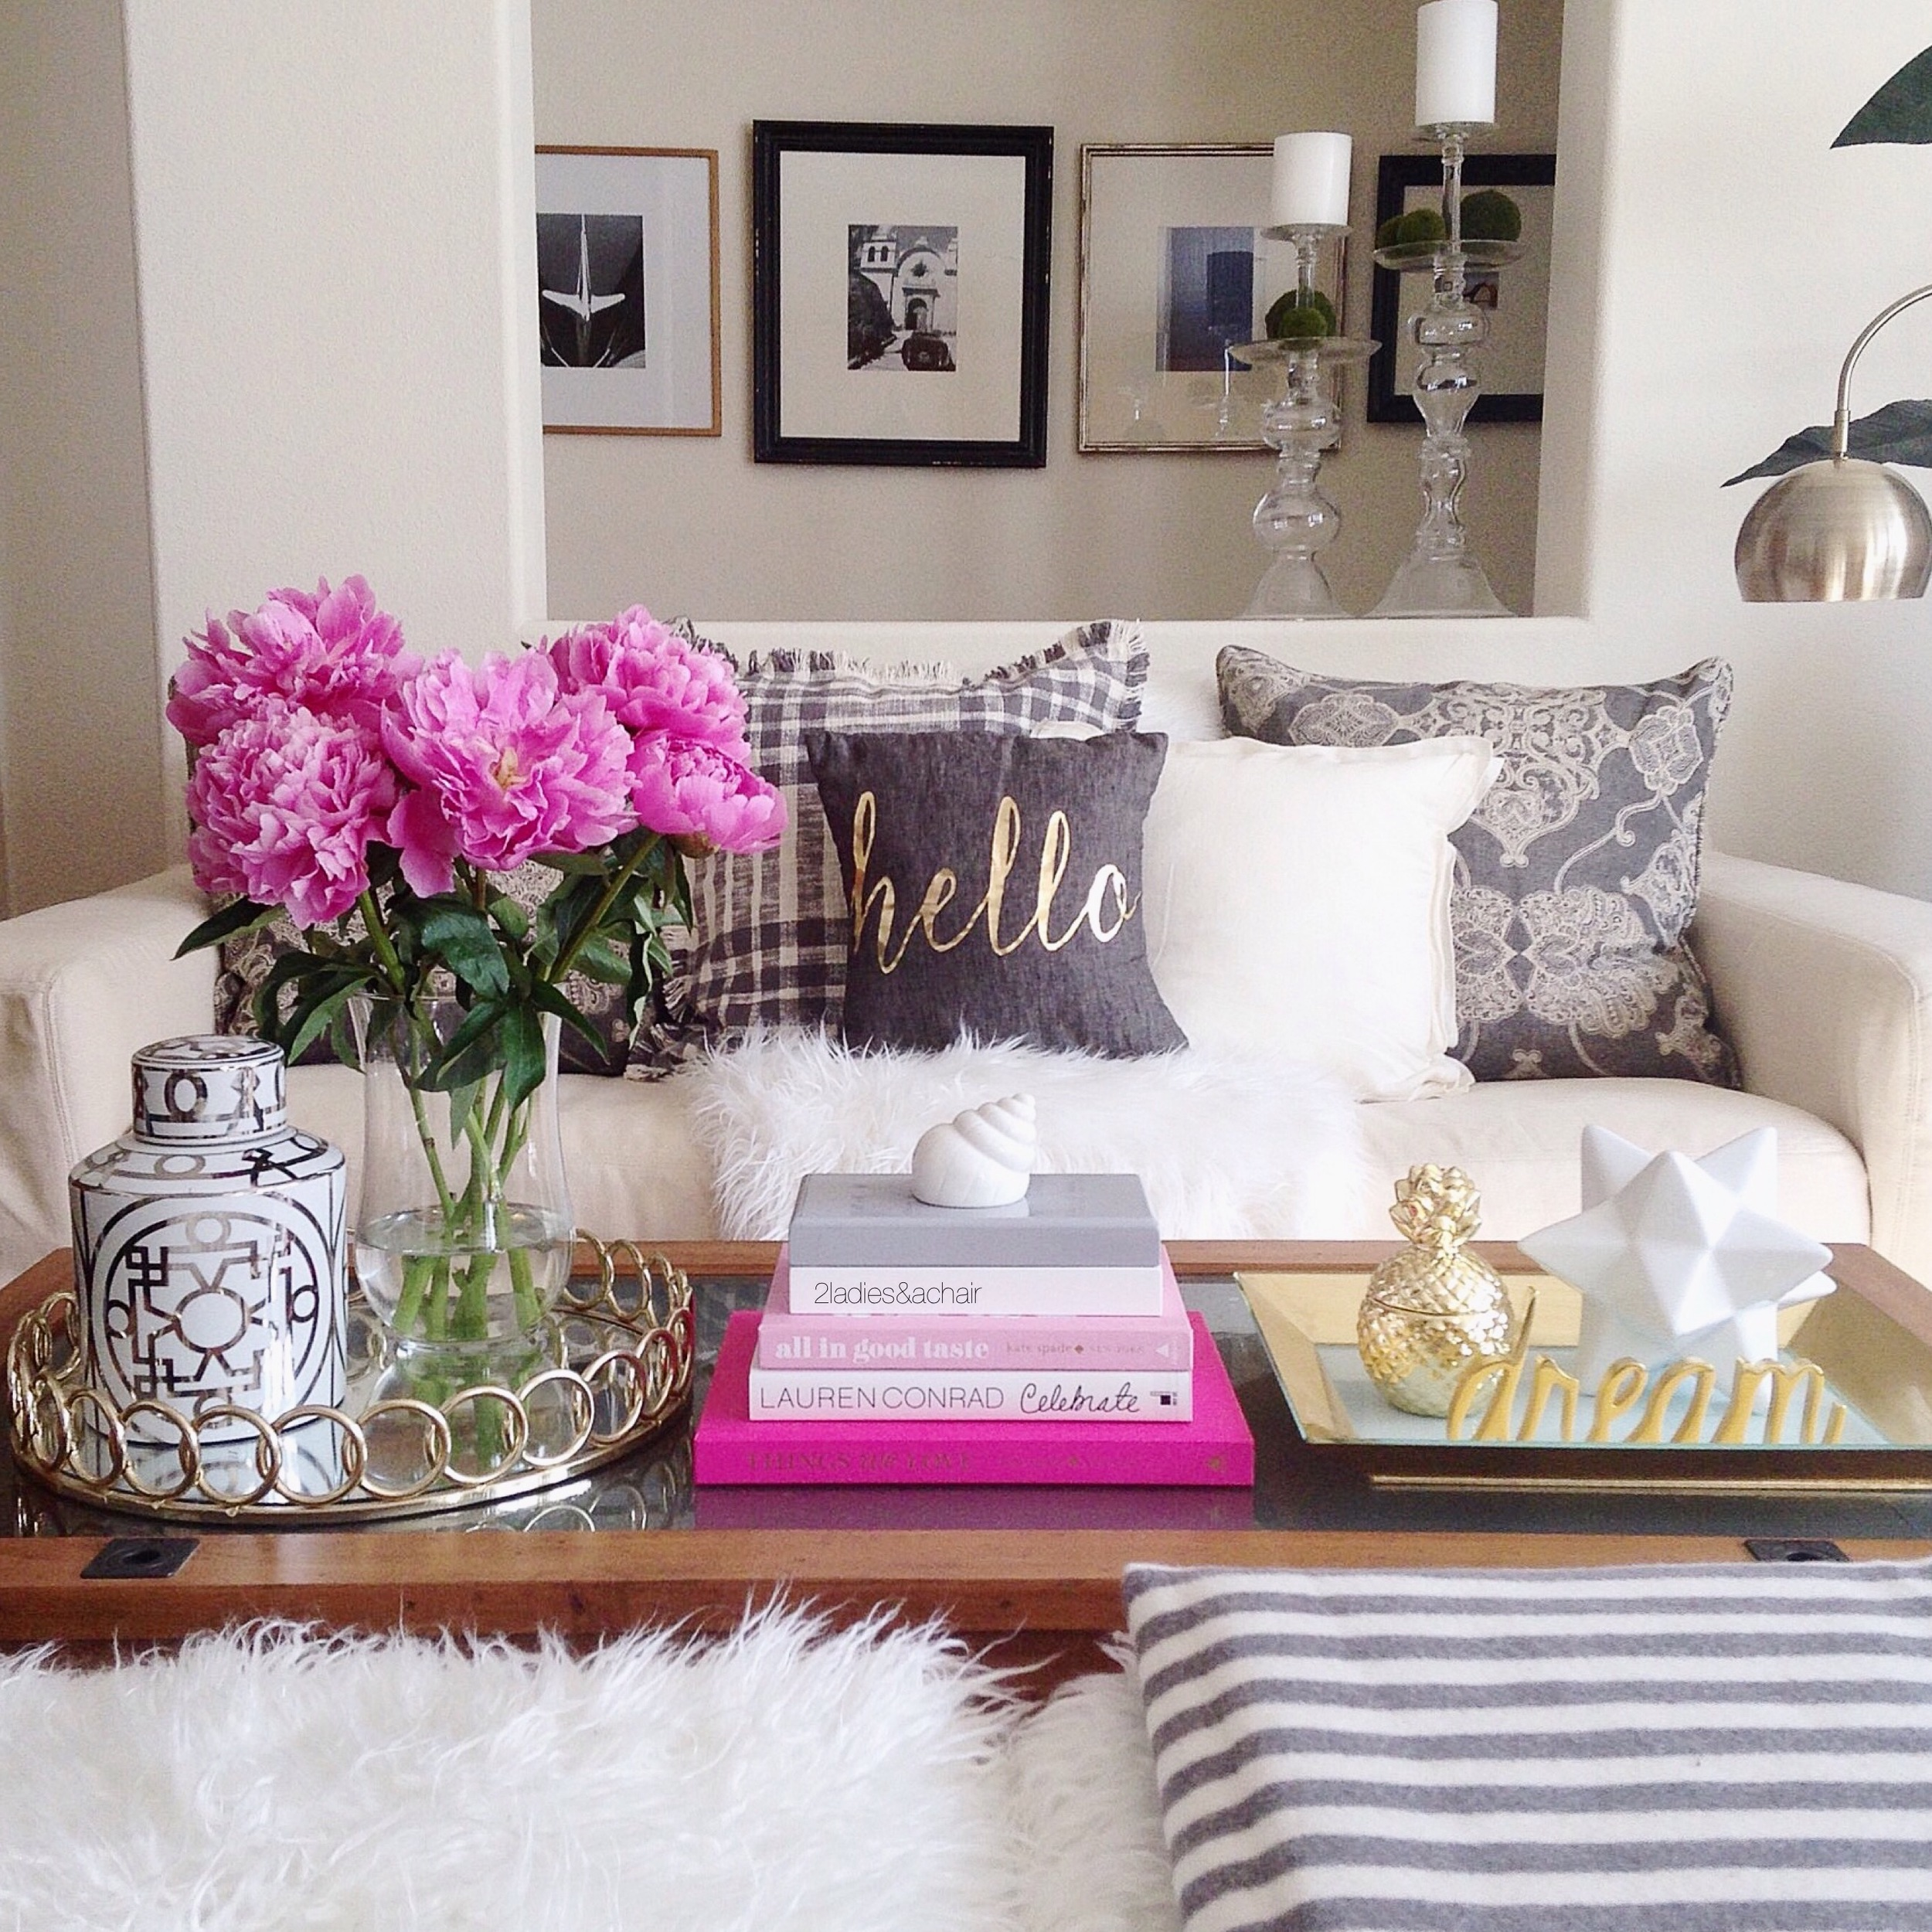 i like to follow 5 basic guidelines when decorating my coffee table this might help you too if you have ever had trouble deciding how to decorate your